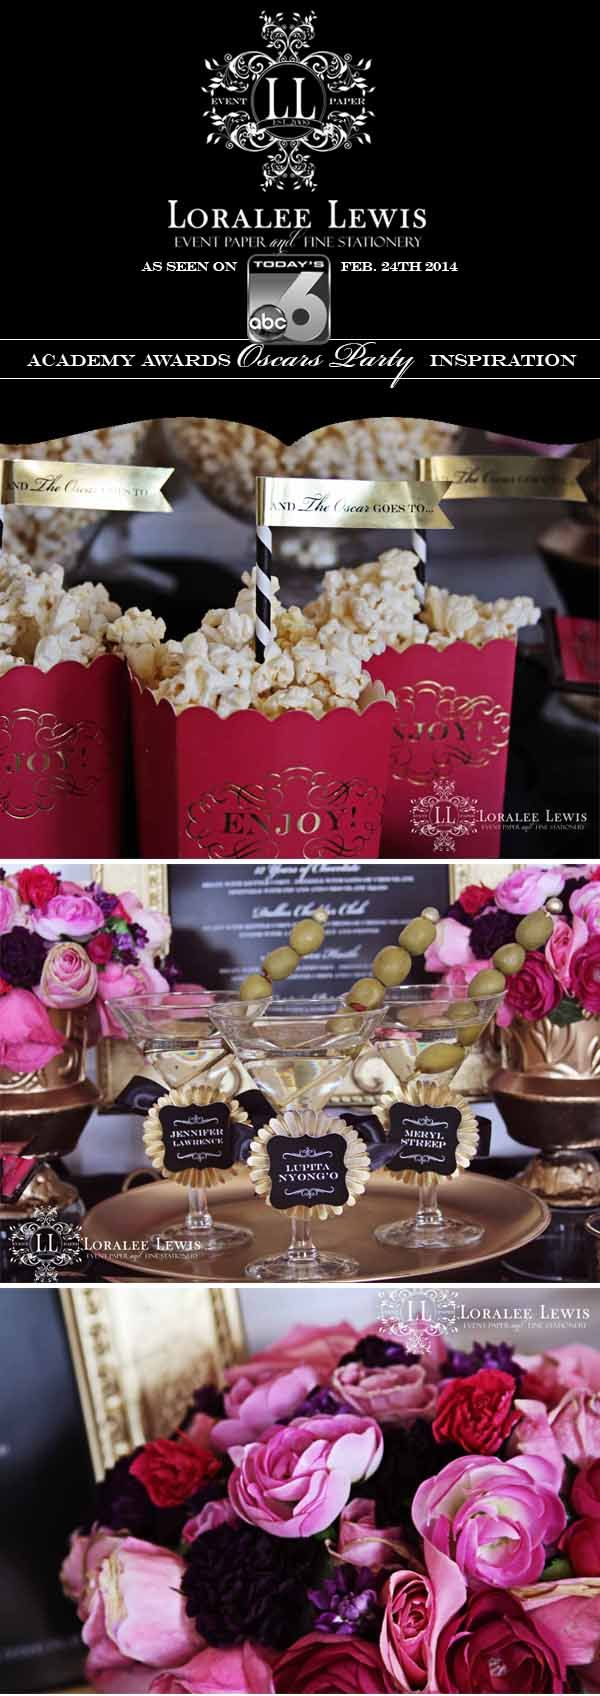 Birthday gift bags 5 cooking for oscar - Oscars Party Ideas